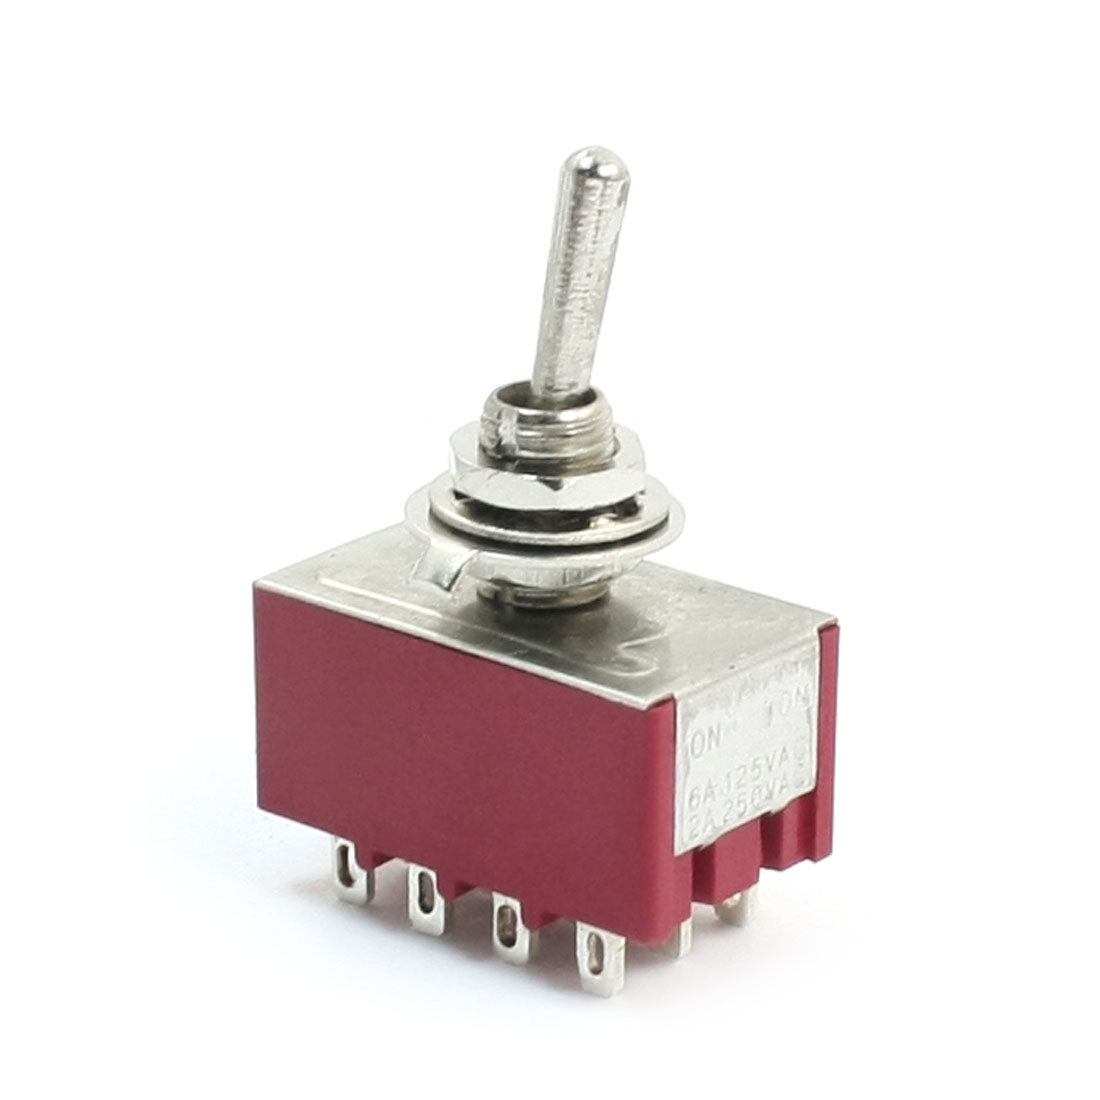 Ac 250V 2A 125V 6A 4P2t 2 Positions 12 Terminals Rocker Toggle Switch image